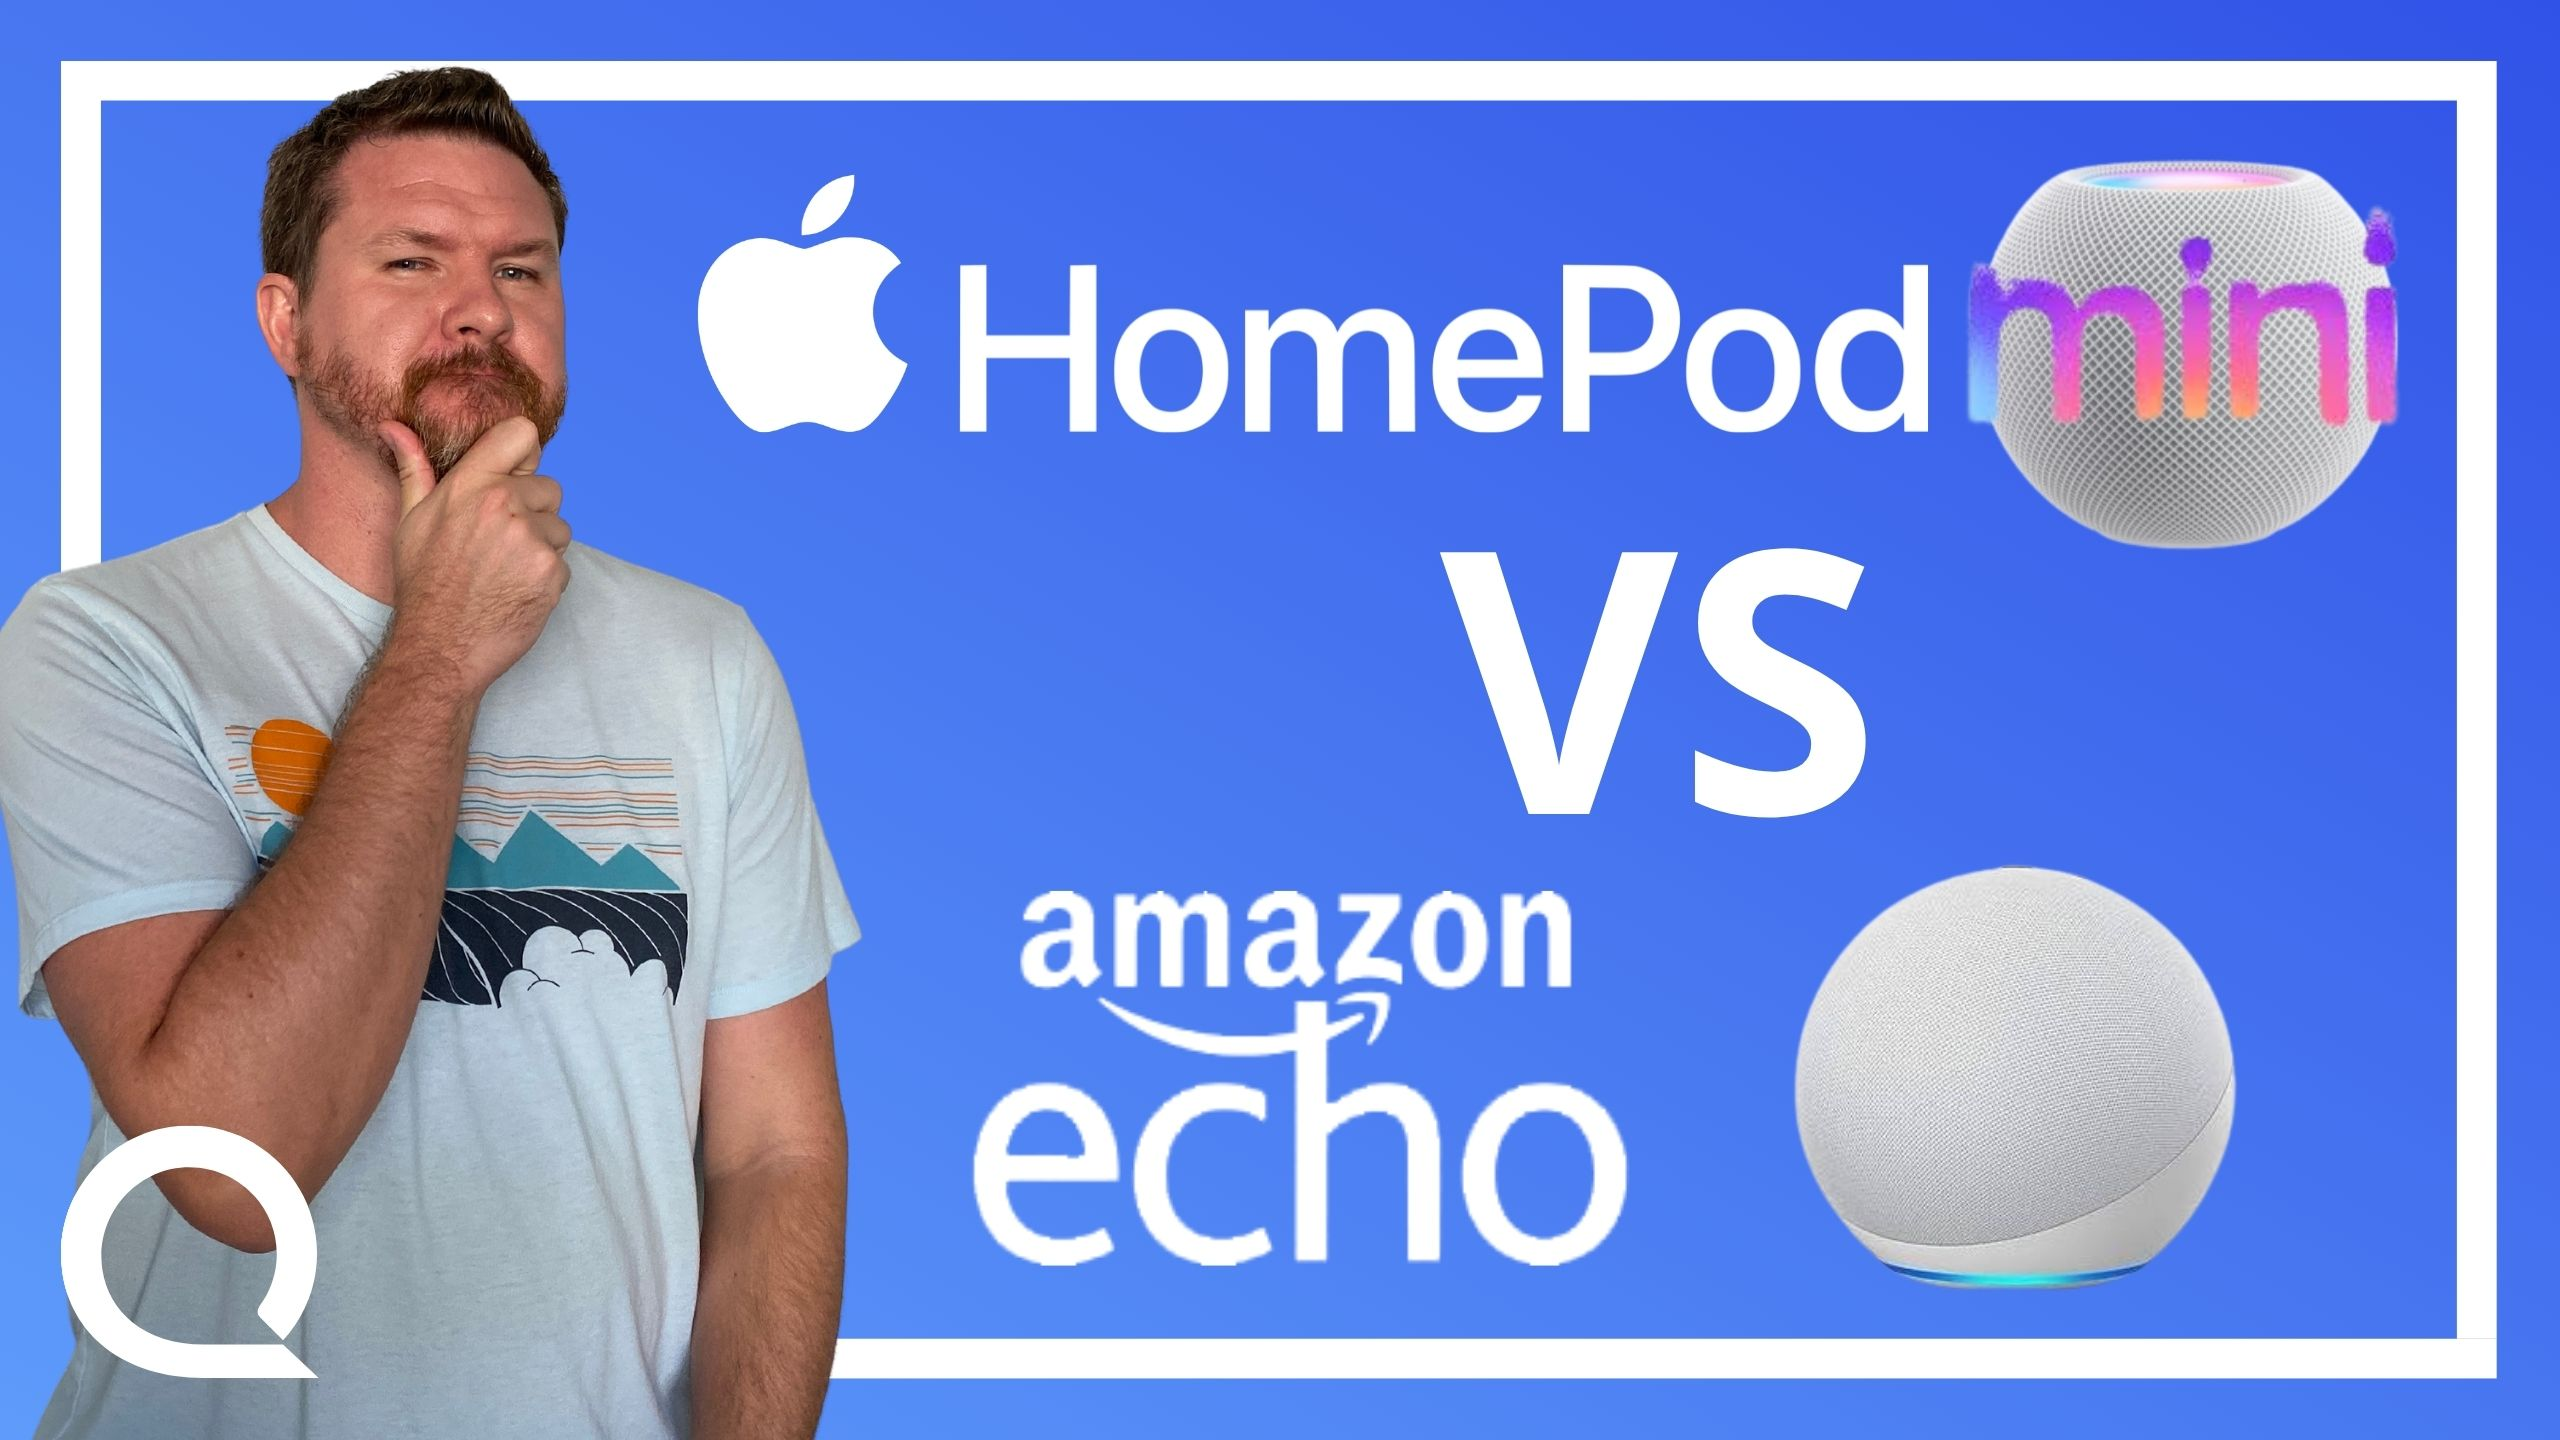 """A man thoughtfully holding his chin next to text """"HomePod Mini VS Amazon Echo"""" and corresponding products."""